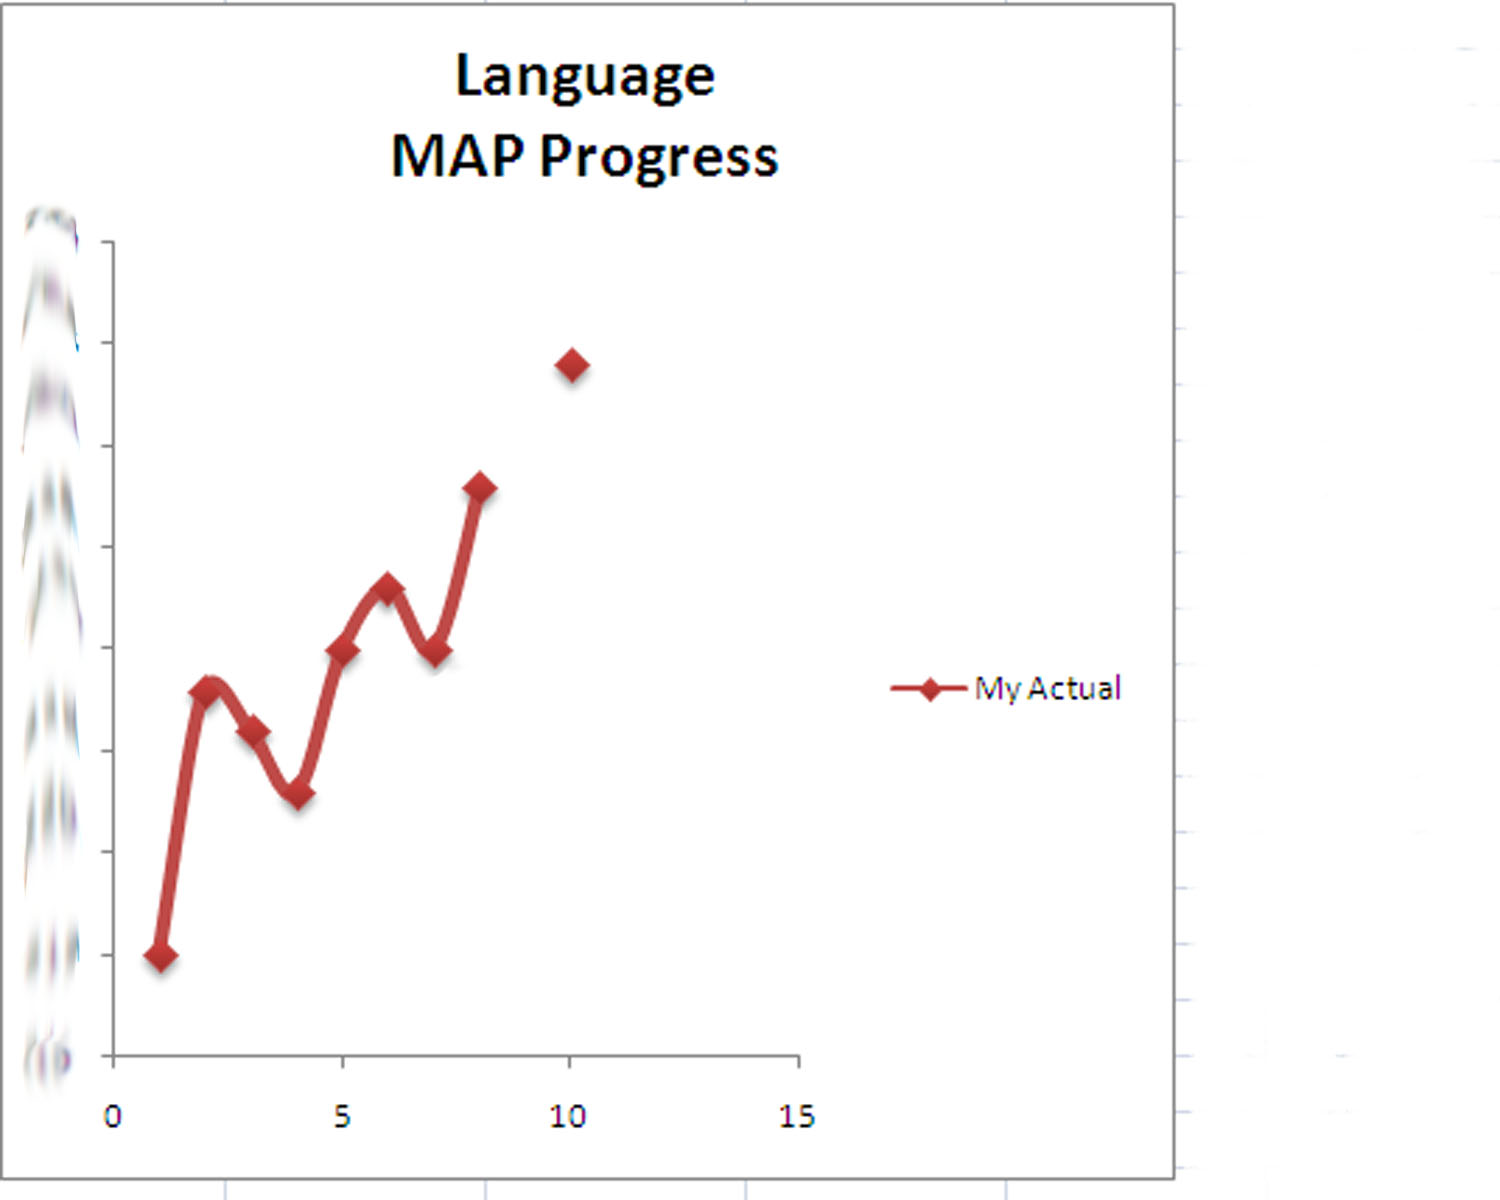 this is not a good chart to display map scores it does not tell when the tests were made so the person will not know over how much time the progress was